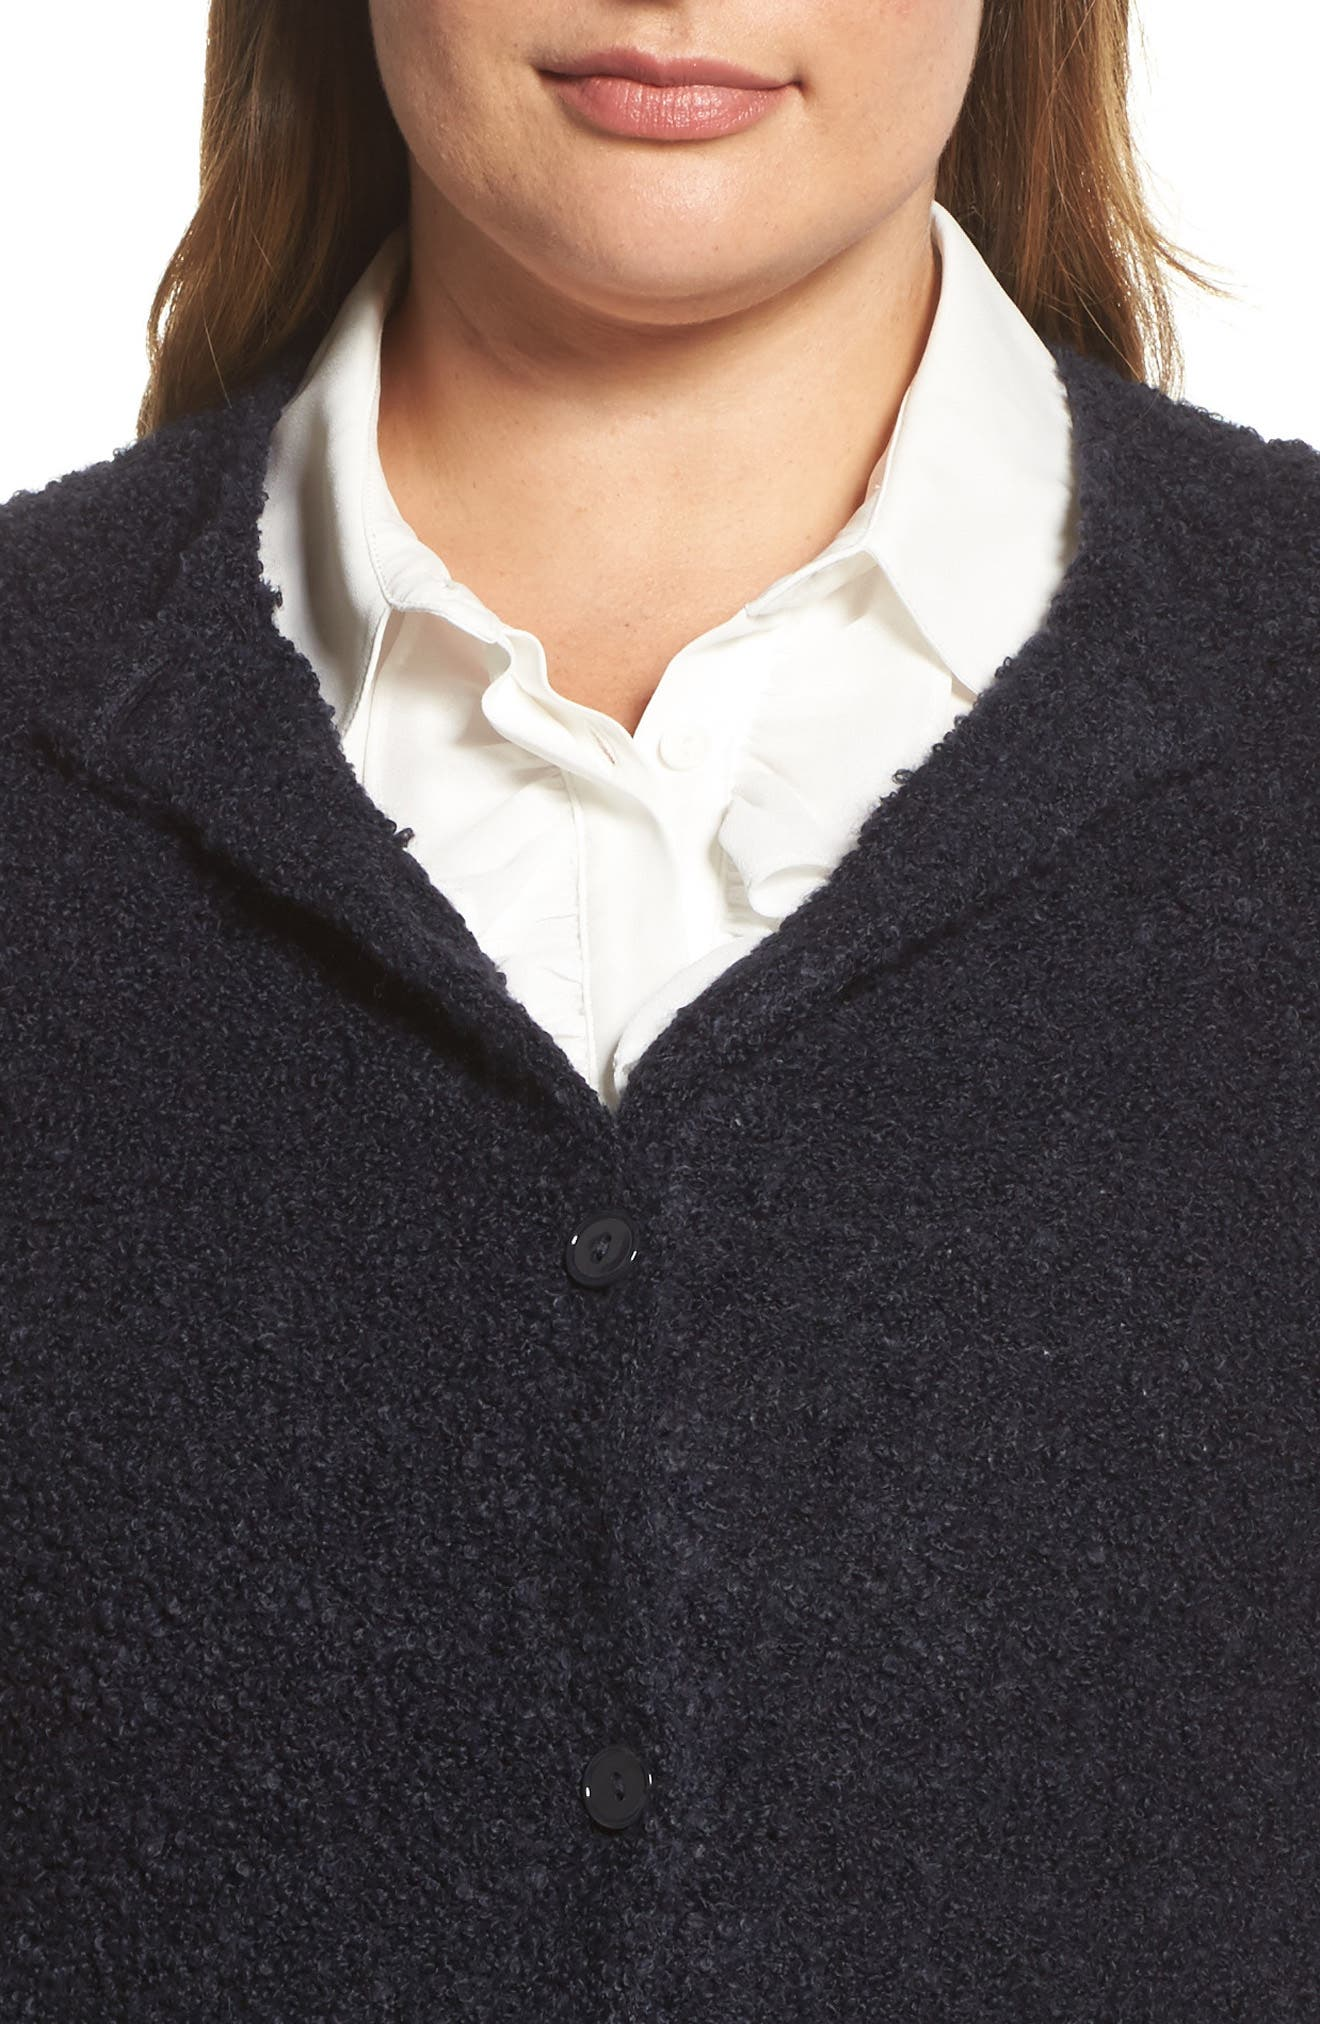 Melodico Button-Up Sweater,                             Alternate thumbnail 4, color,                             Navy